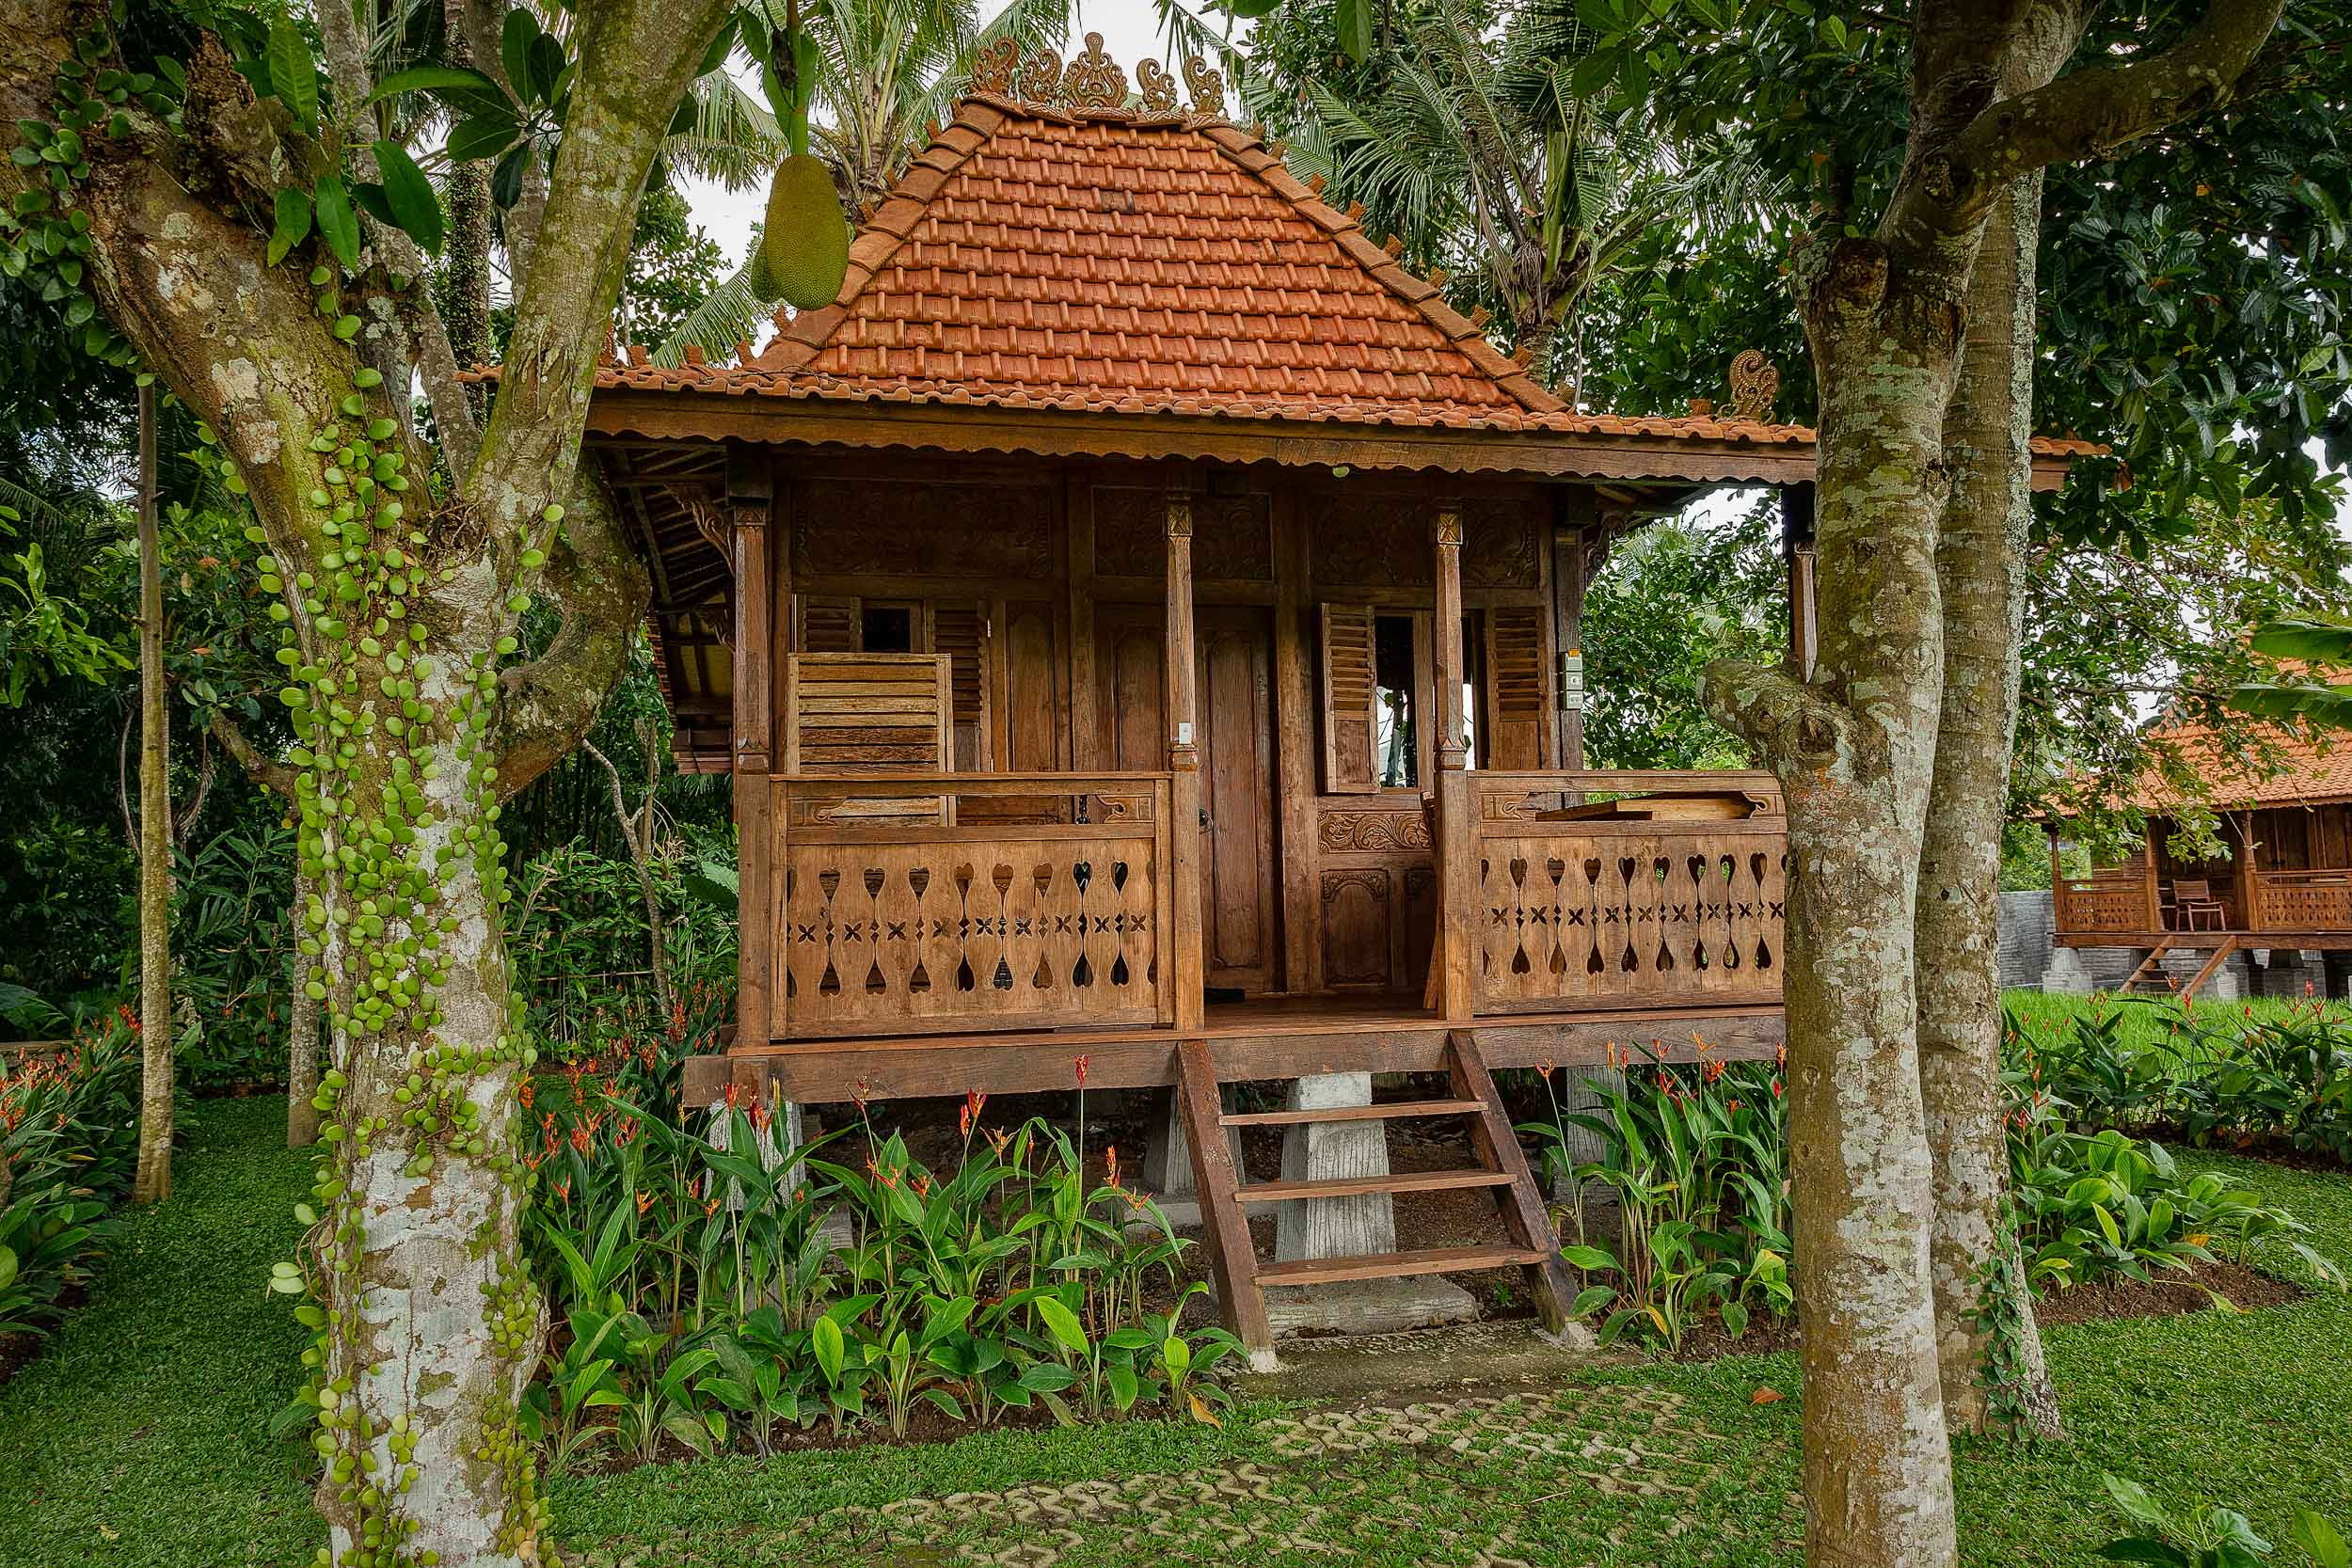 Kajane Mua  is a low to mid price accommodation option in  Ubud, Bali . This photo features one of their delightful free standing  bungalows, on the edge of the paddy fields .